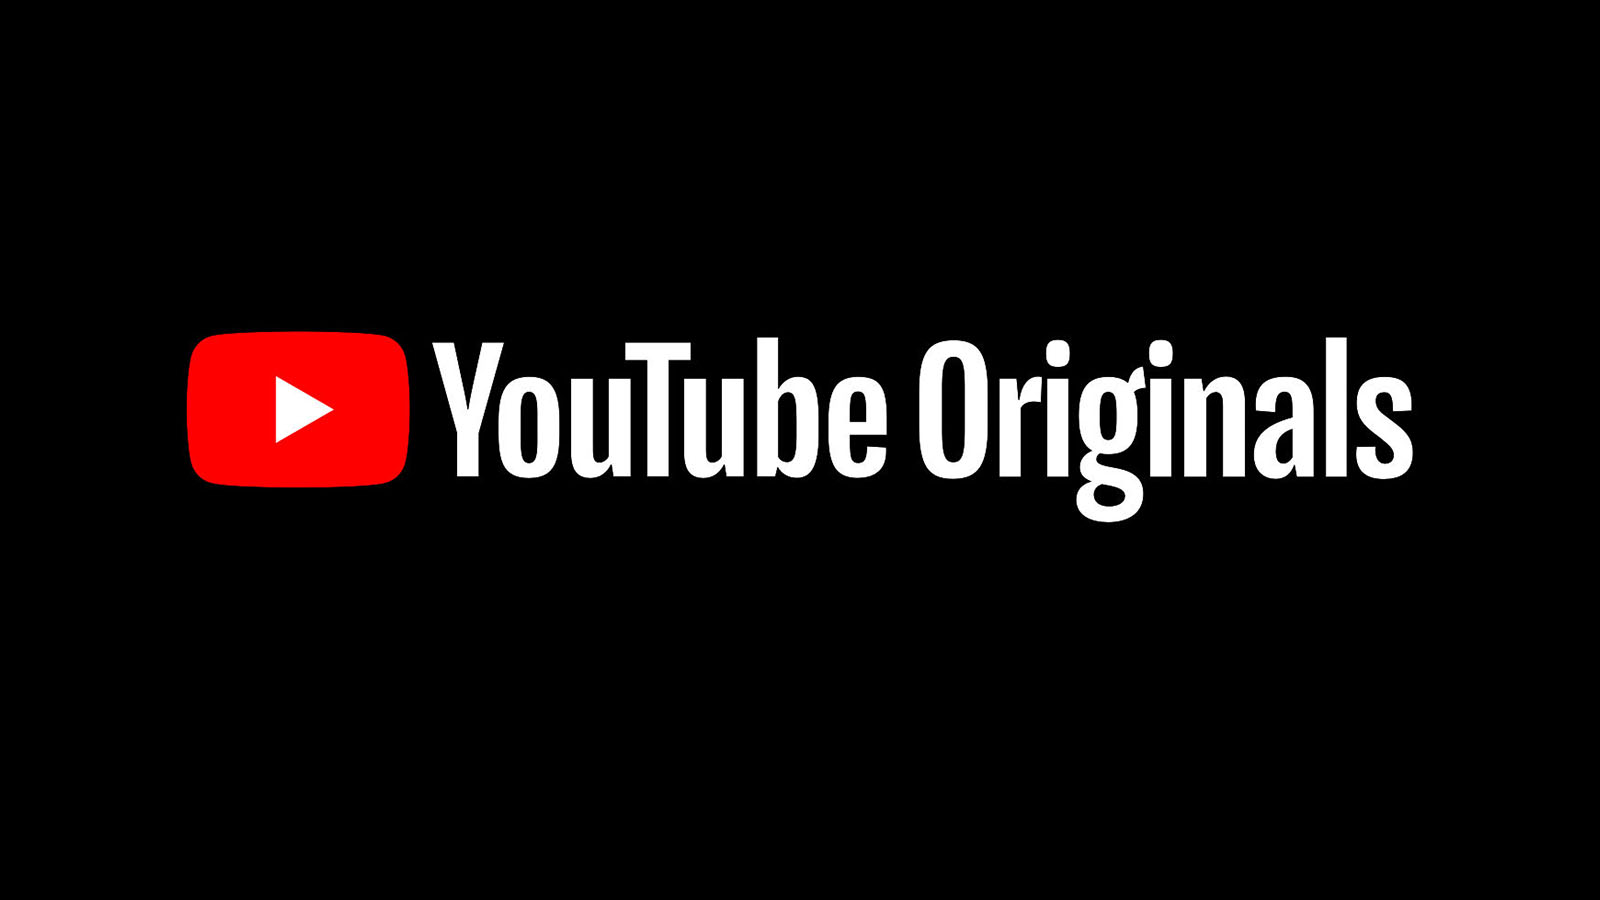 Upcoming-YouTube-Originals-Content-Might-Become-Free-with-Ads-1-1.jpg